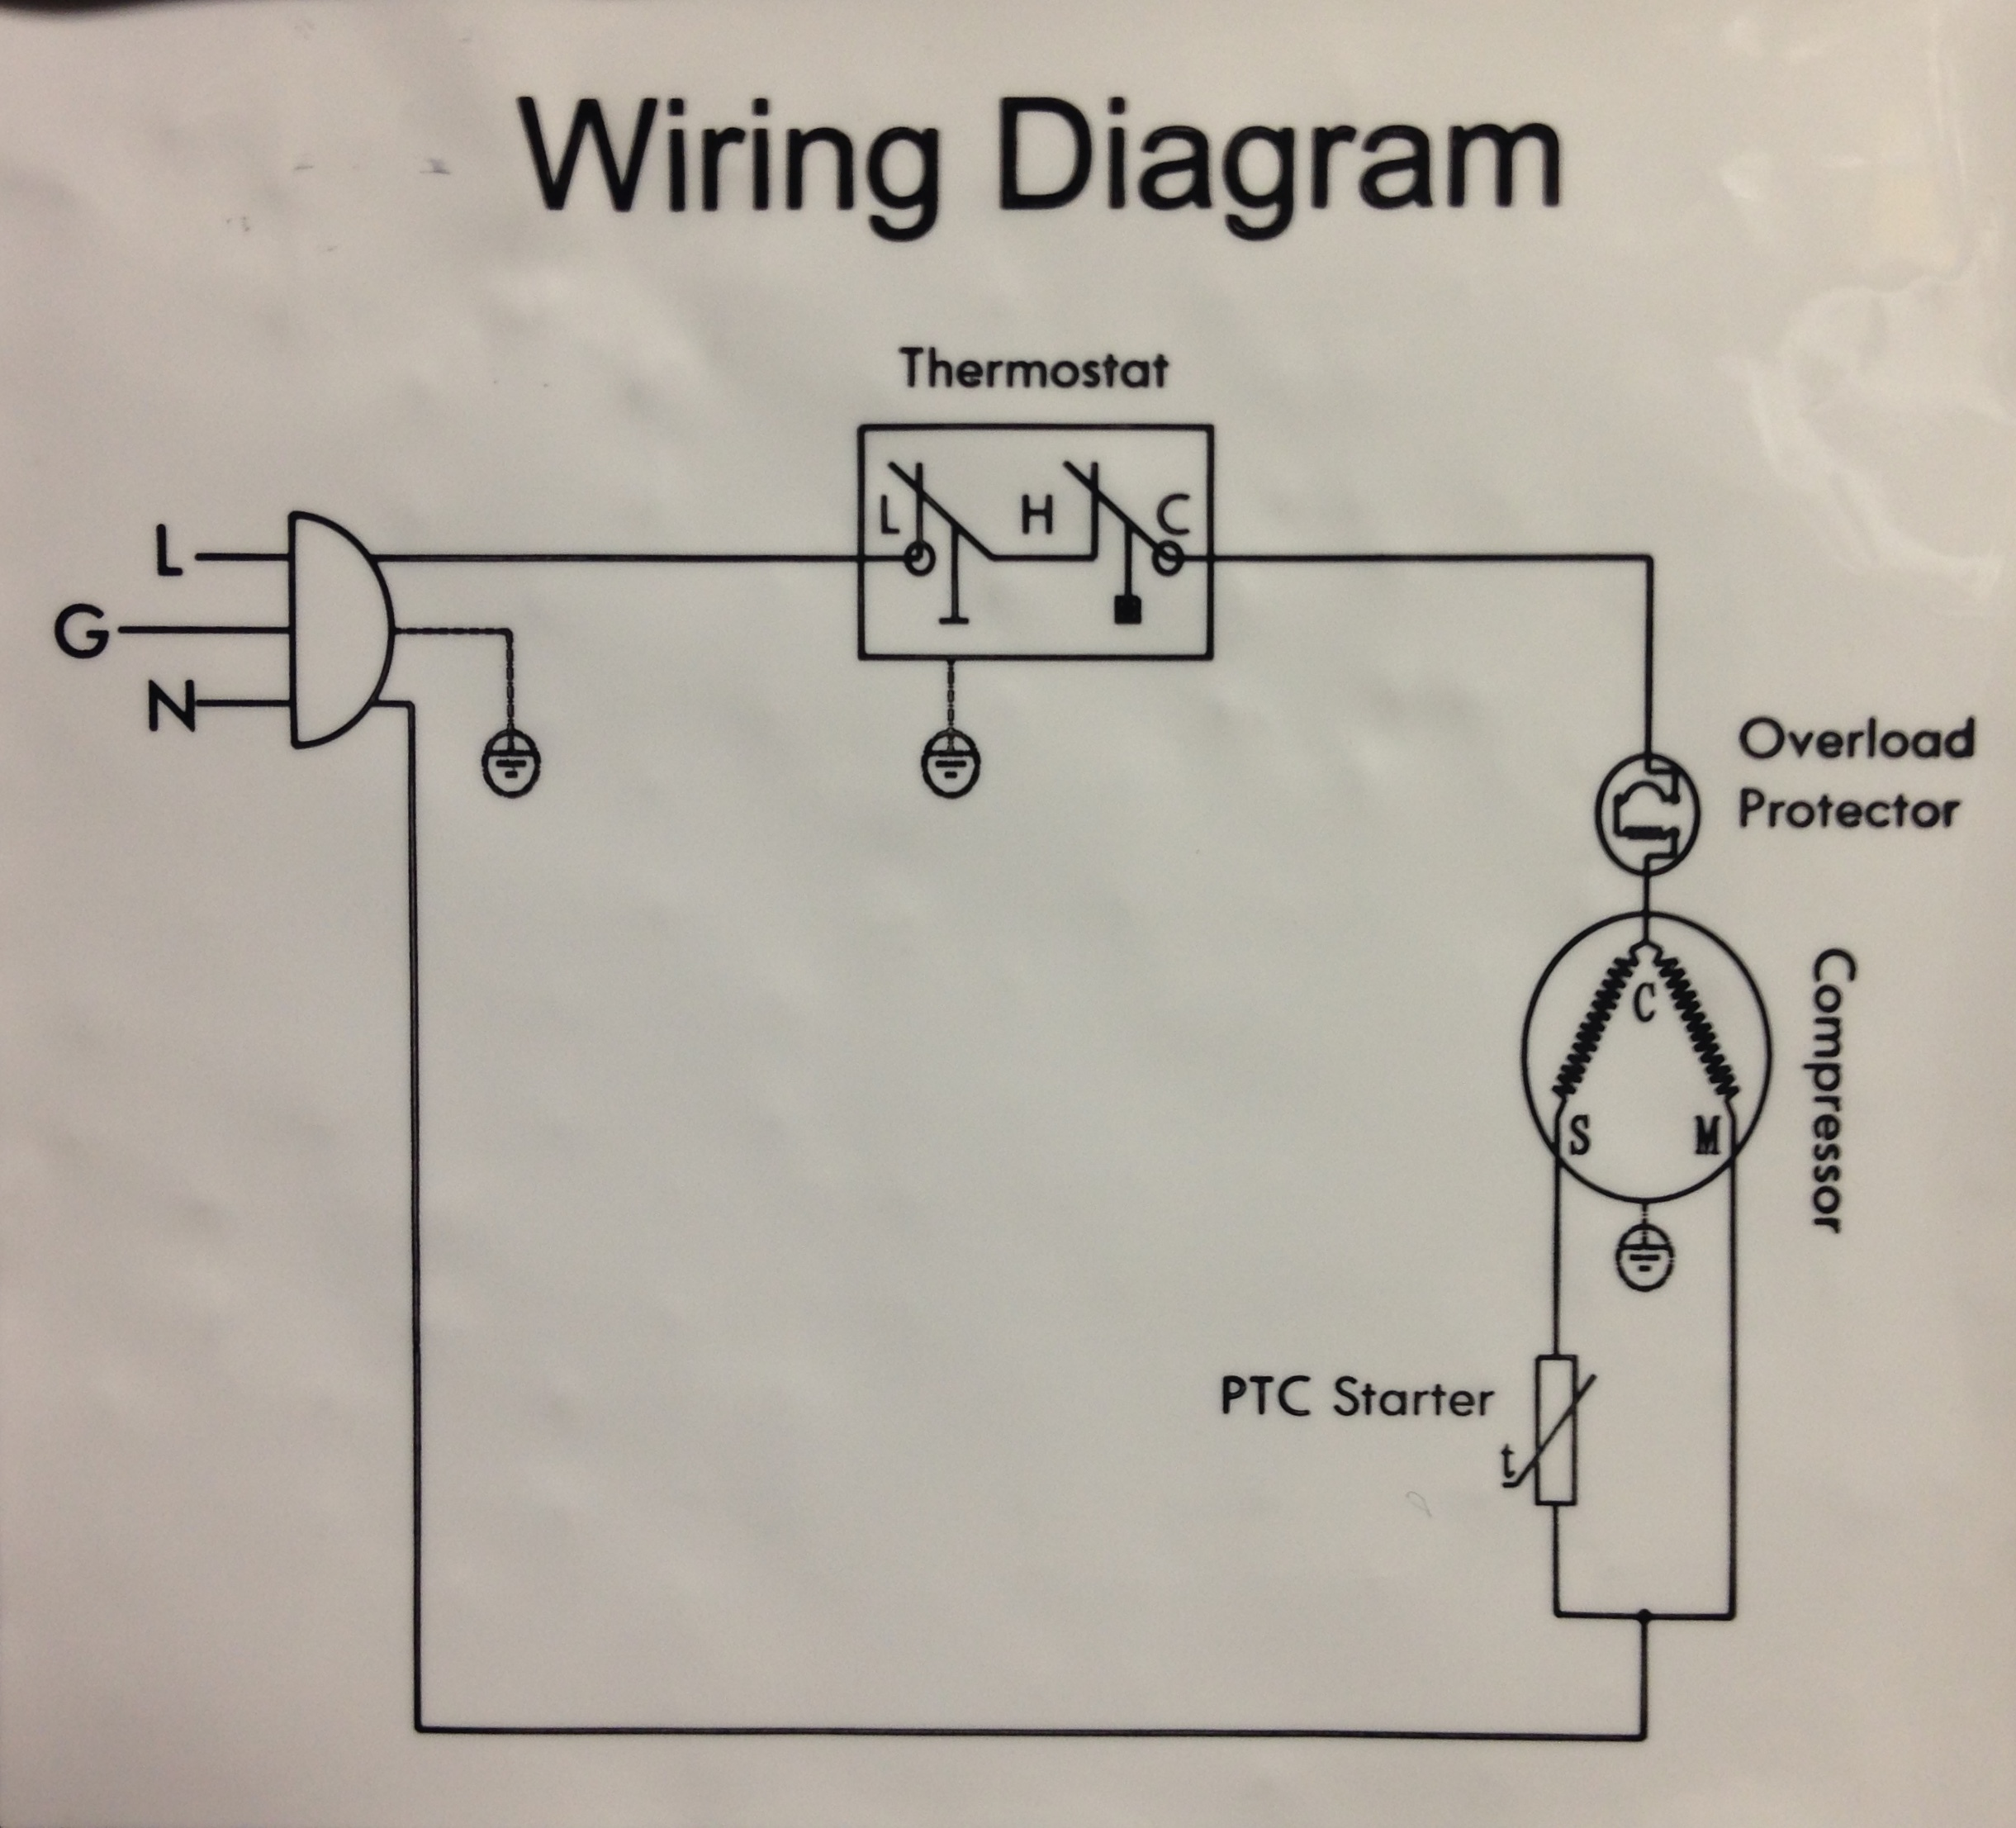 new build electronics newb diagram help fridge build brewpi rh community brewpi com A C Thermostat Wiring Diagram A C Thermostat Wiring Diagram